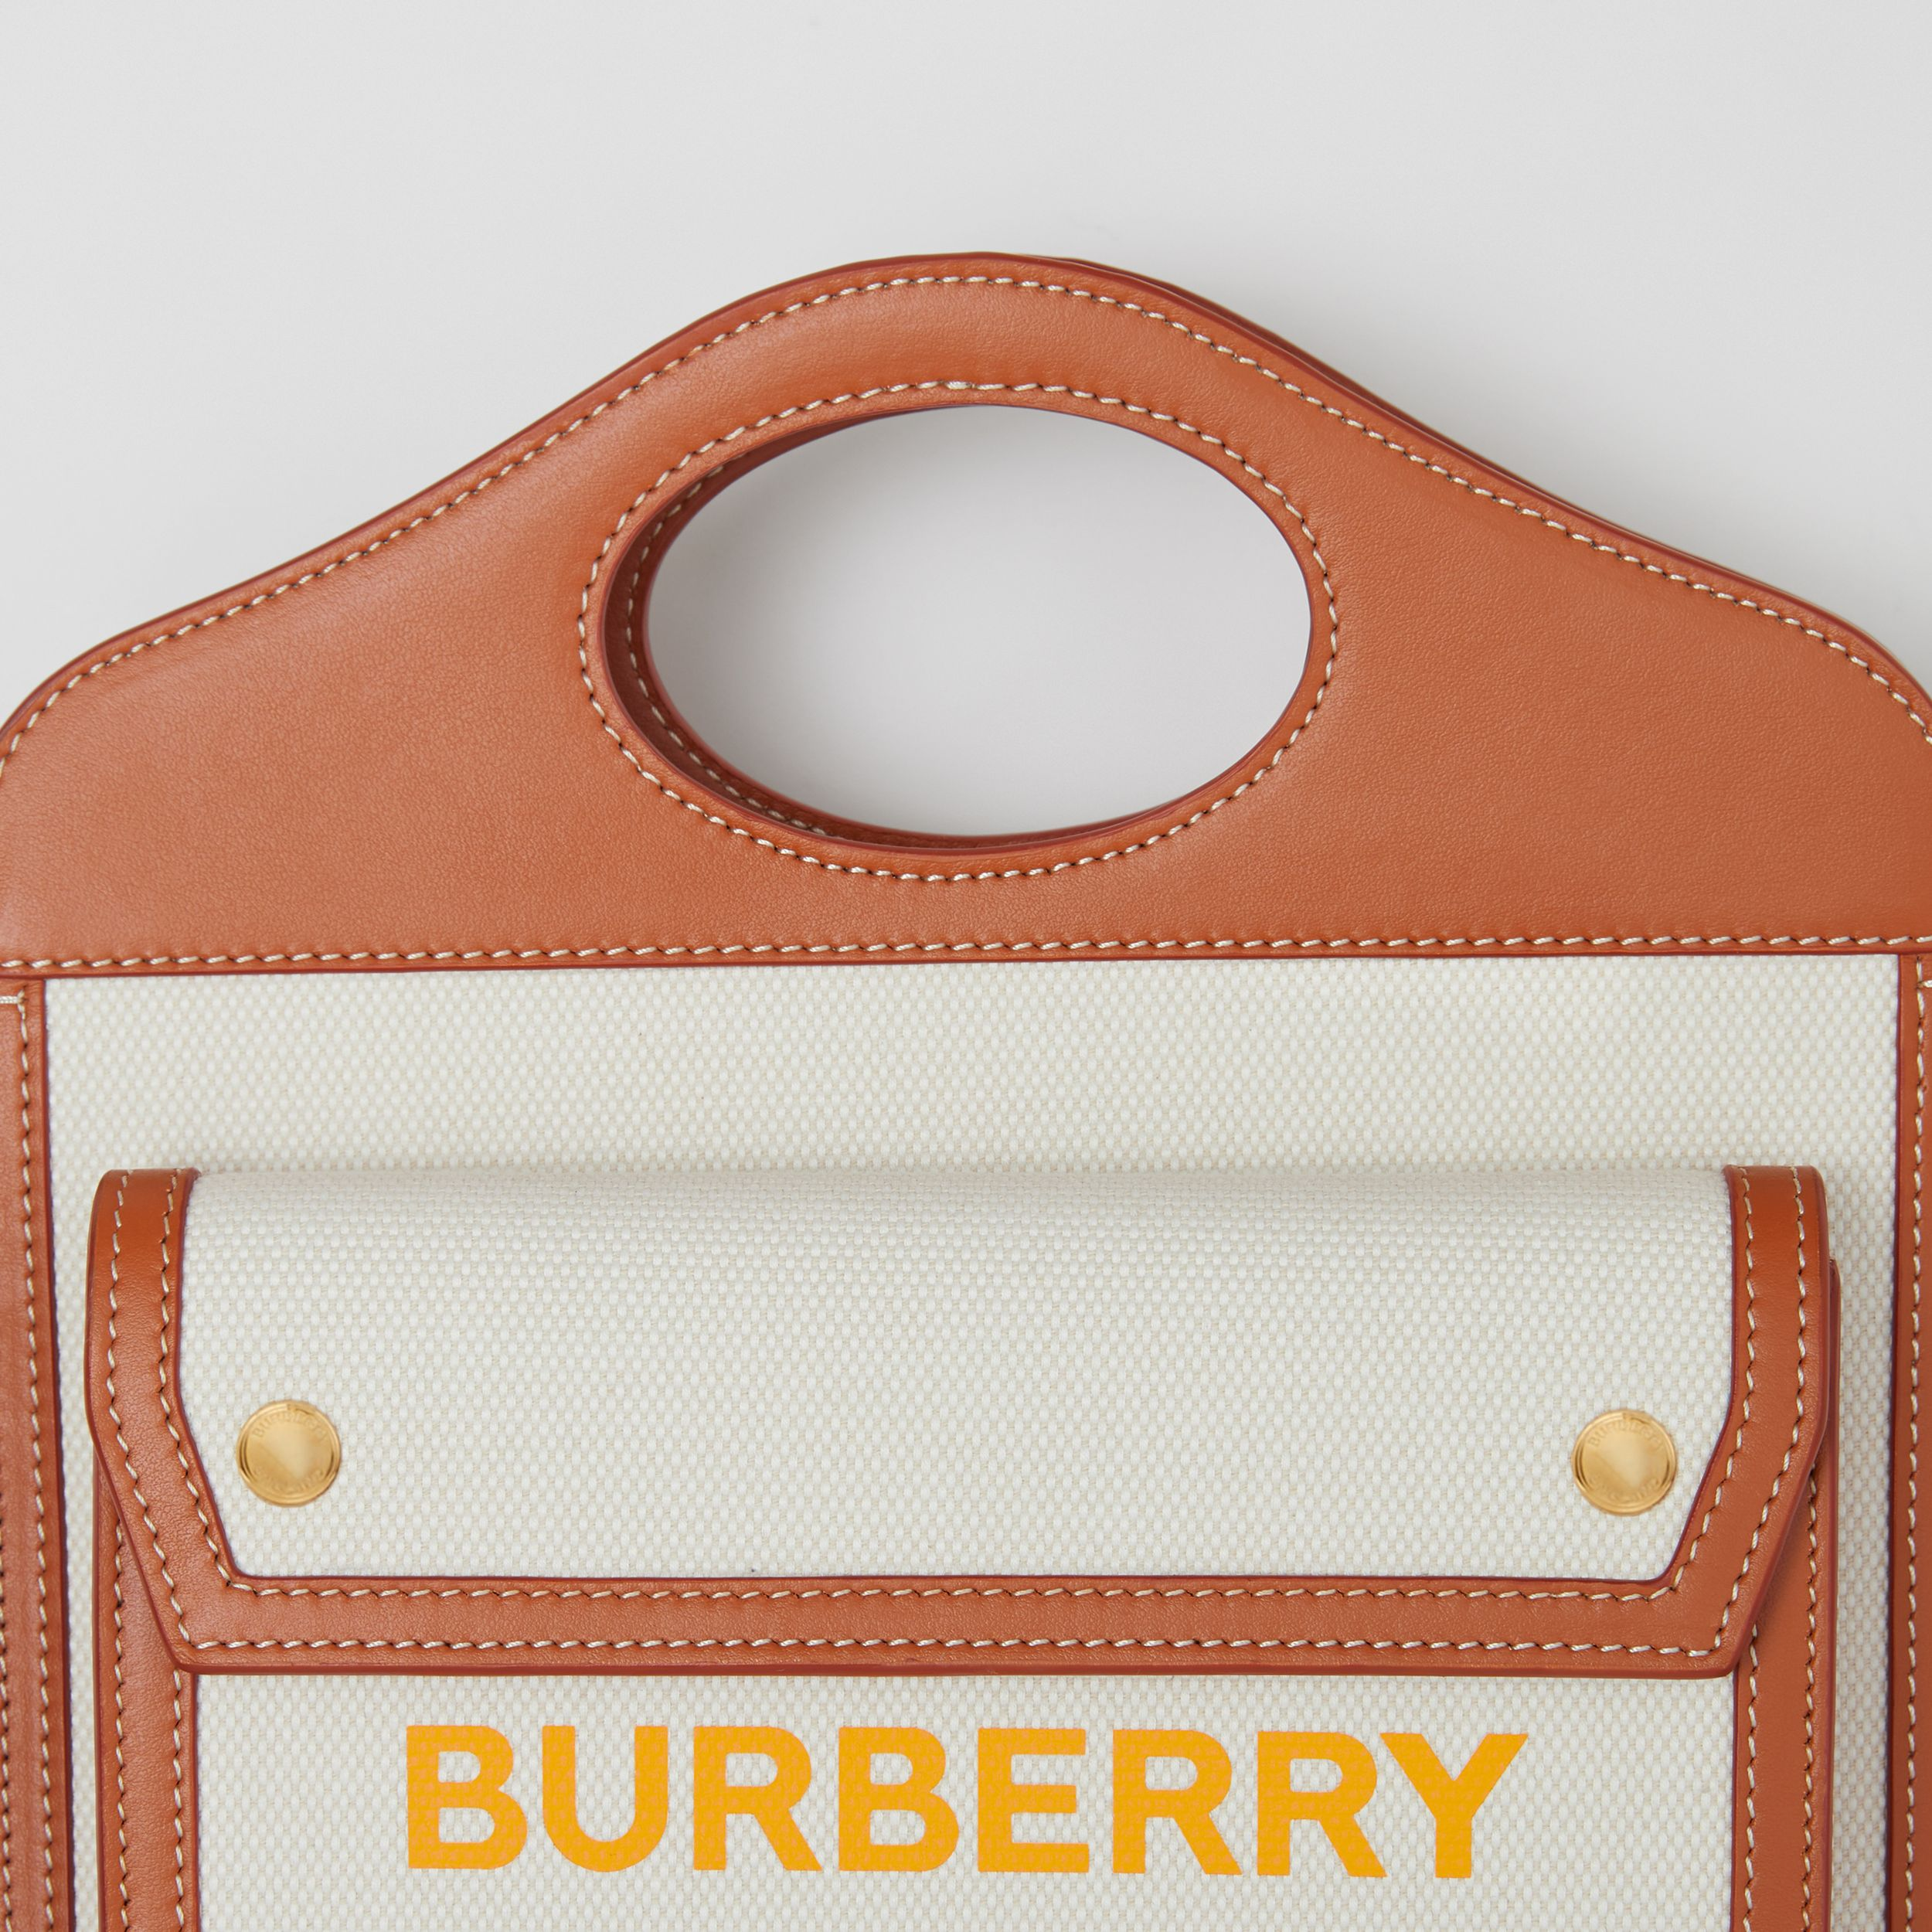 Mini Two-tone Canvas and Leather Pocket Bag in Natural/dark Amber - Women | Burberry Canada - 2